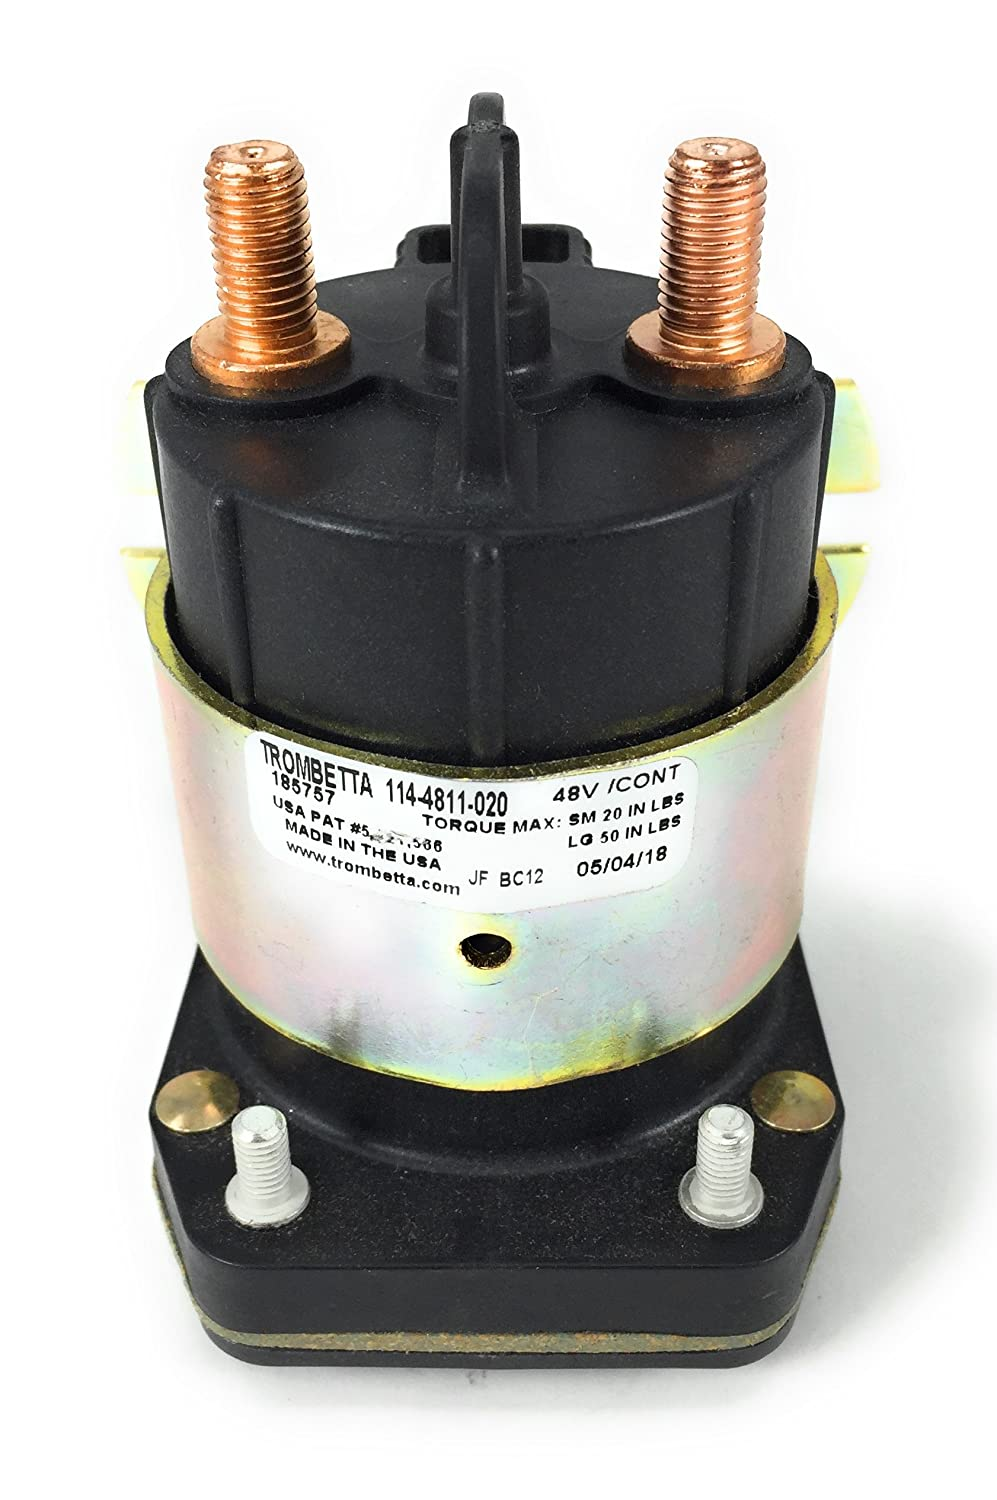 Solenoid Trombetta 114-4811-020 48 Volt on